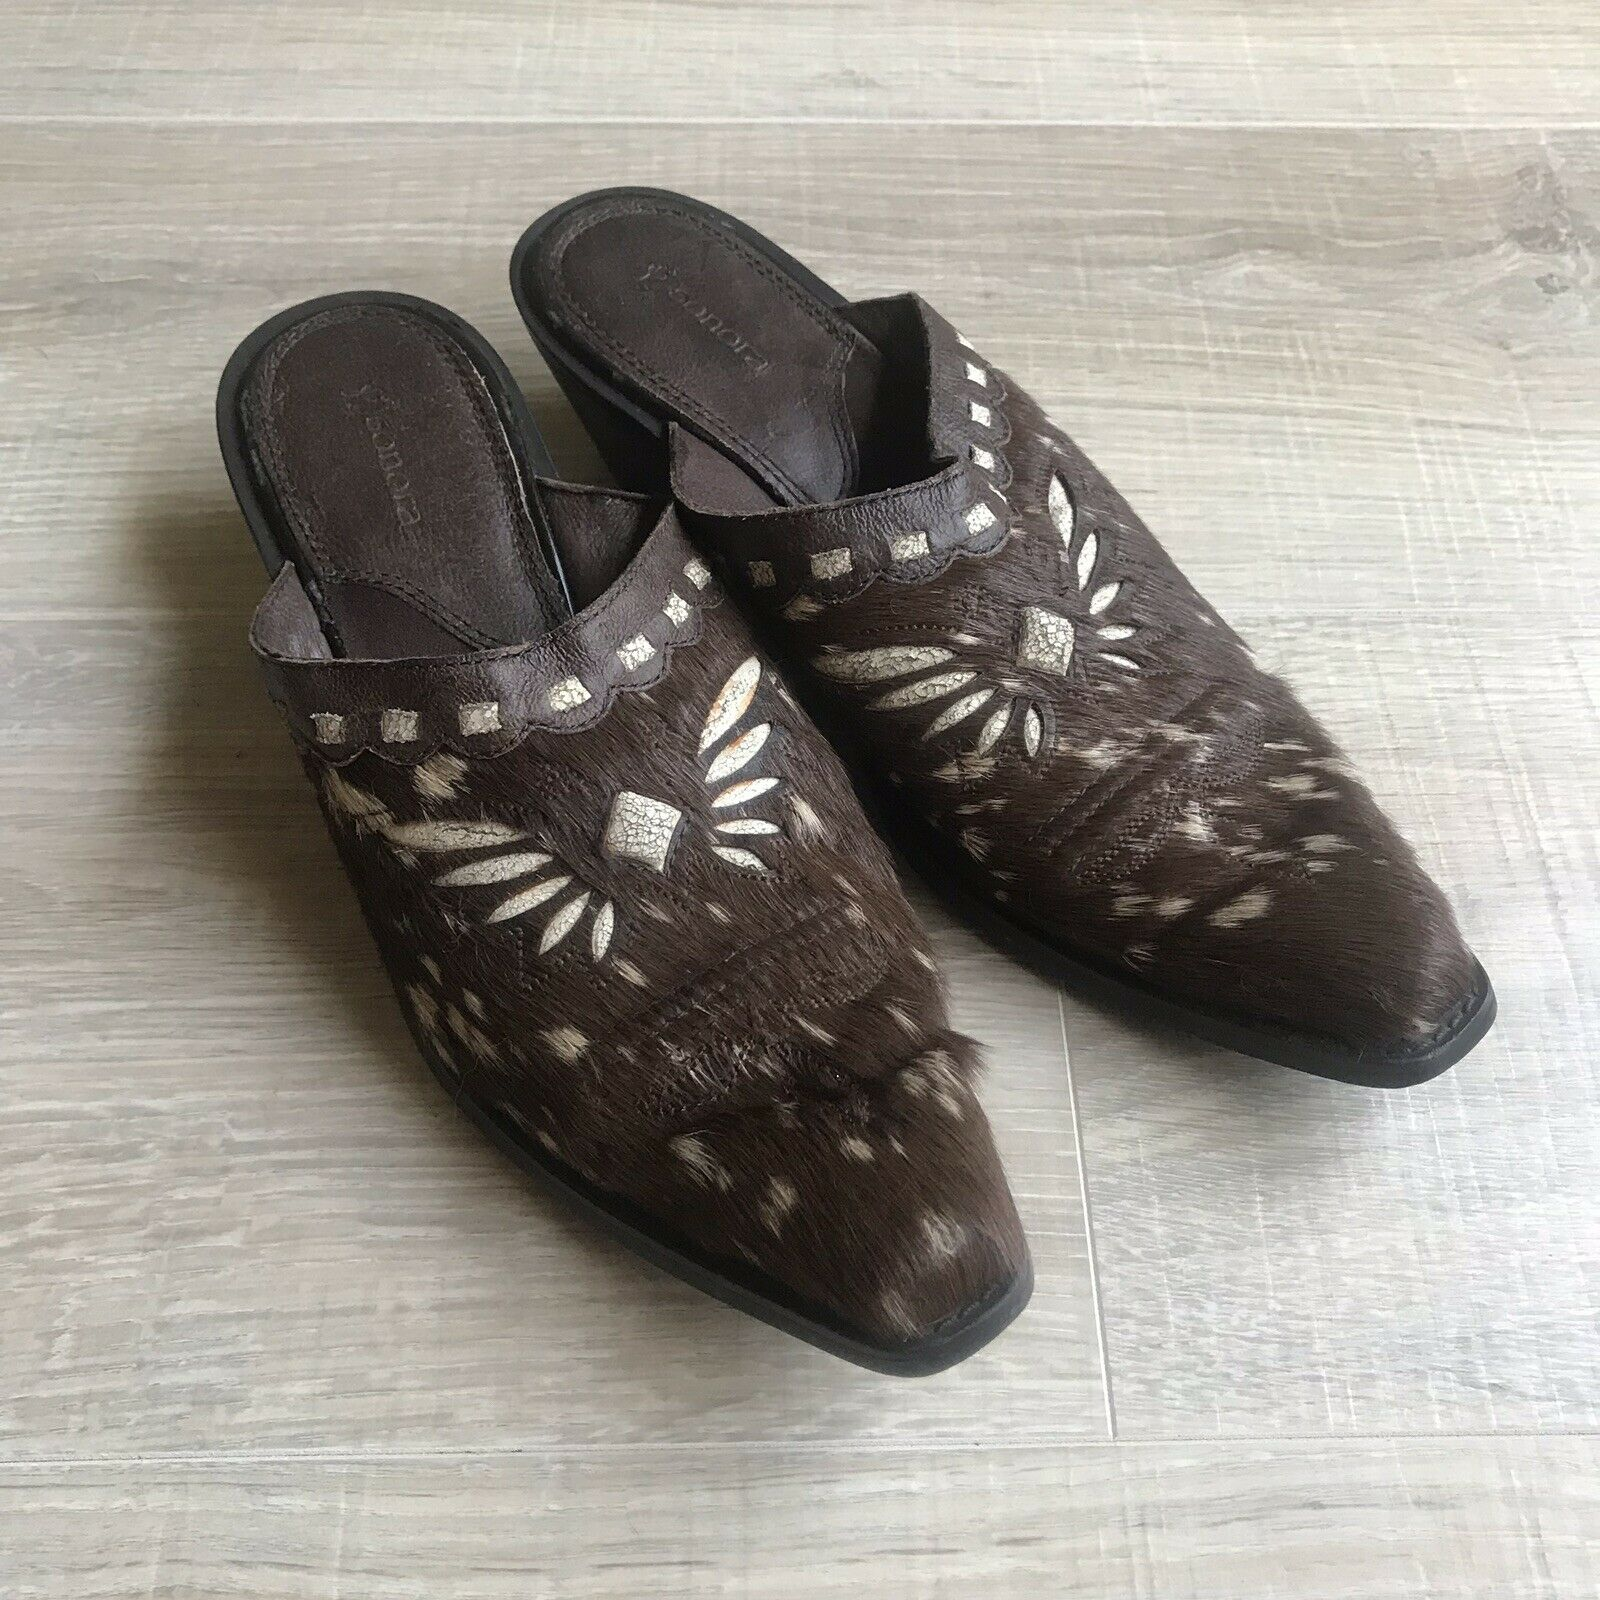 SONORA Double H Cowboy Booties 7 Butterfly Clogs Mules shoes Bovine Hair Leather